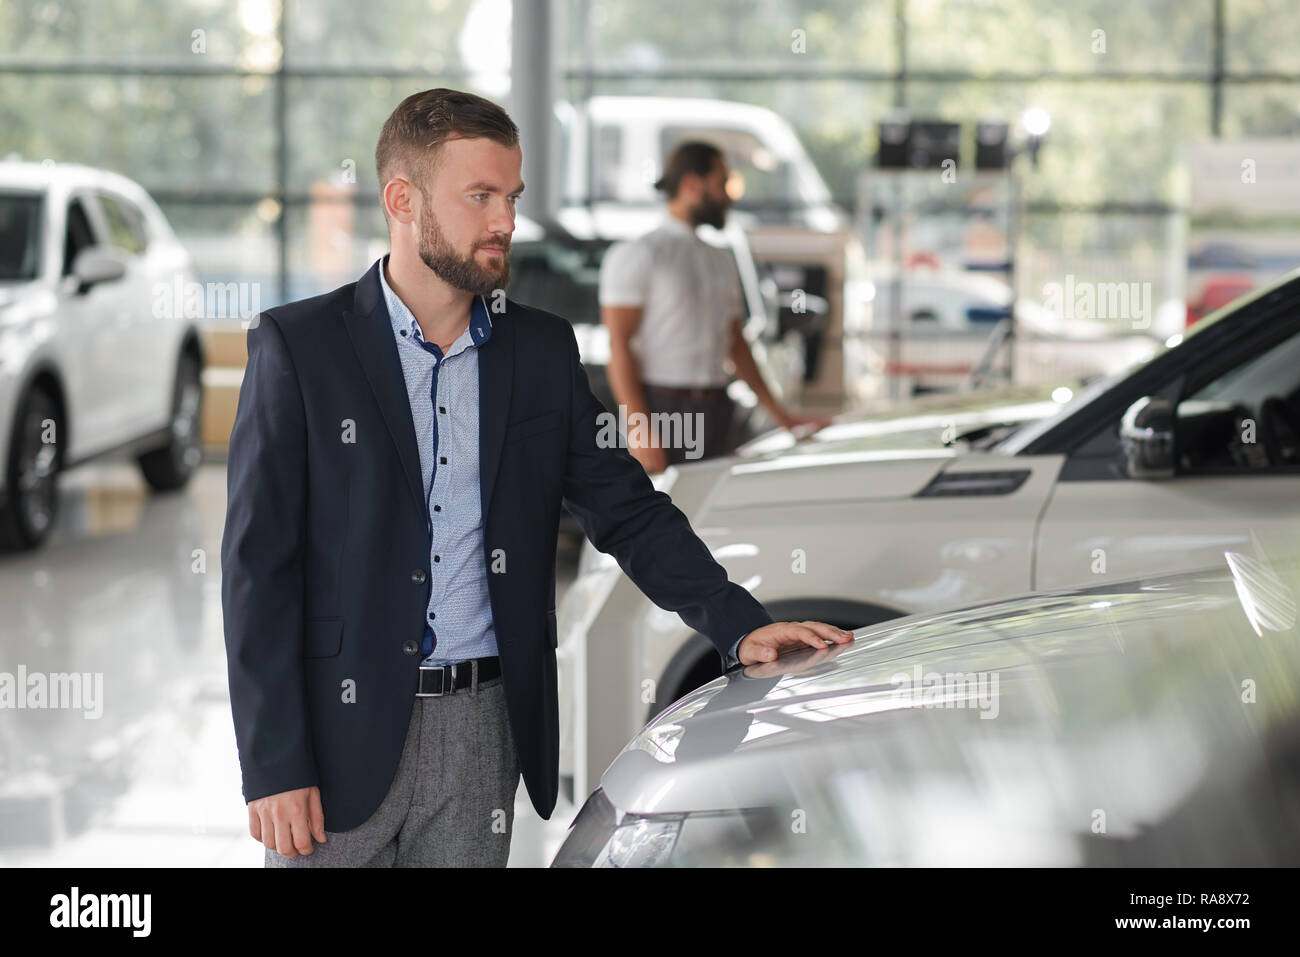 Men looking for vehicles in car showroom. Bearded man wearing in dark blue jacket looking at car and holding hand on car hood. People observing automobiles for purchase. - Stock Image